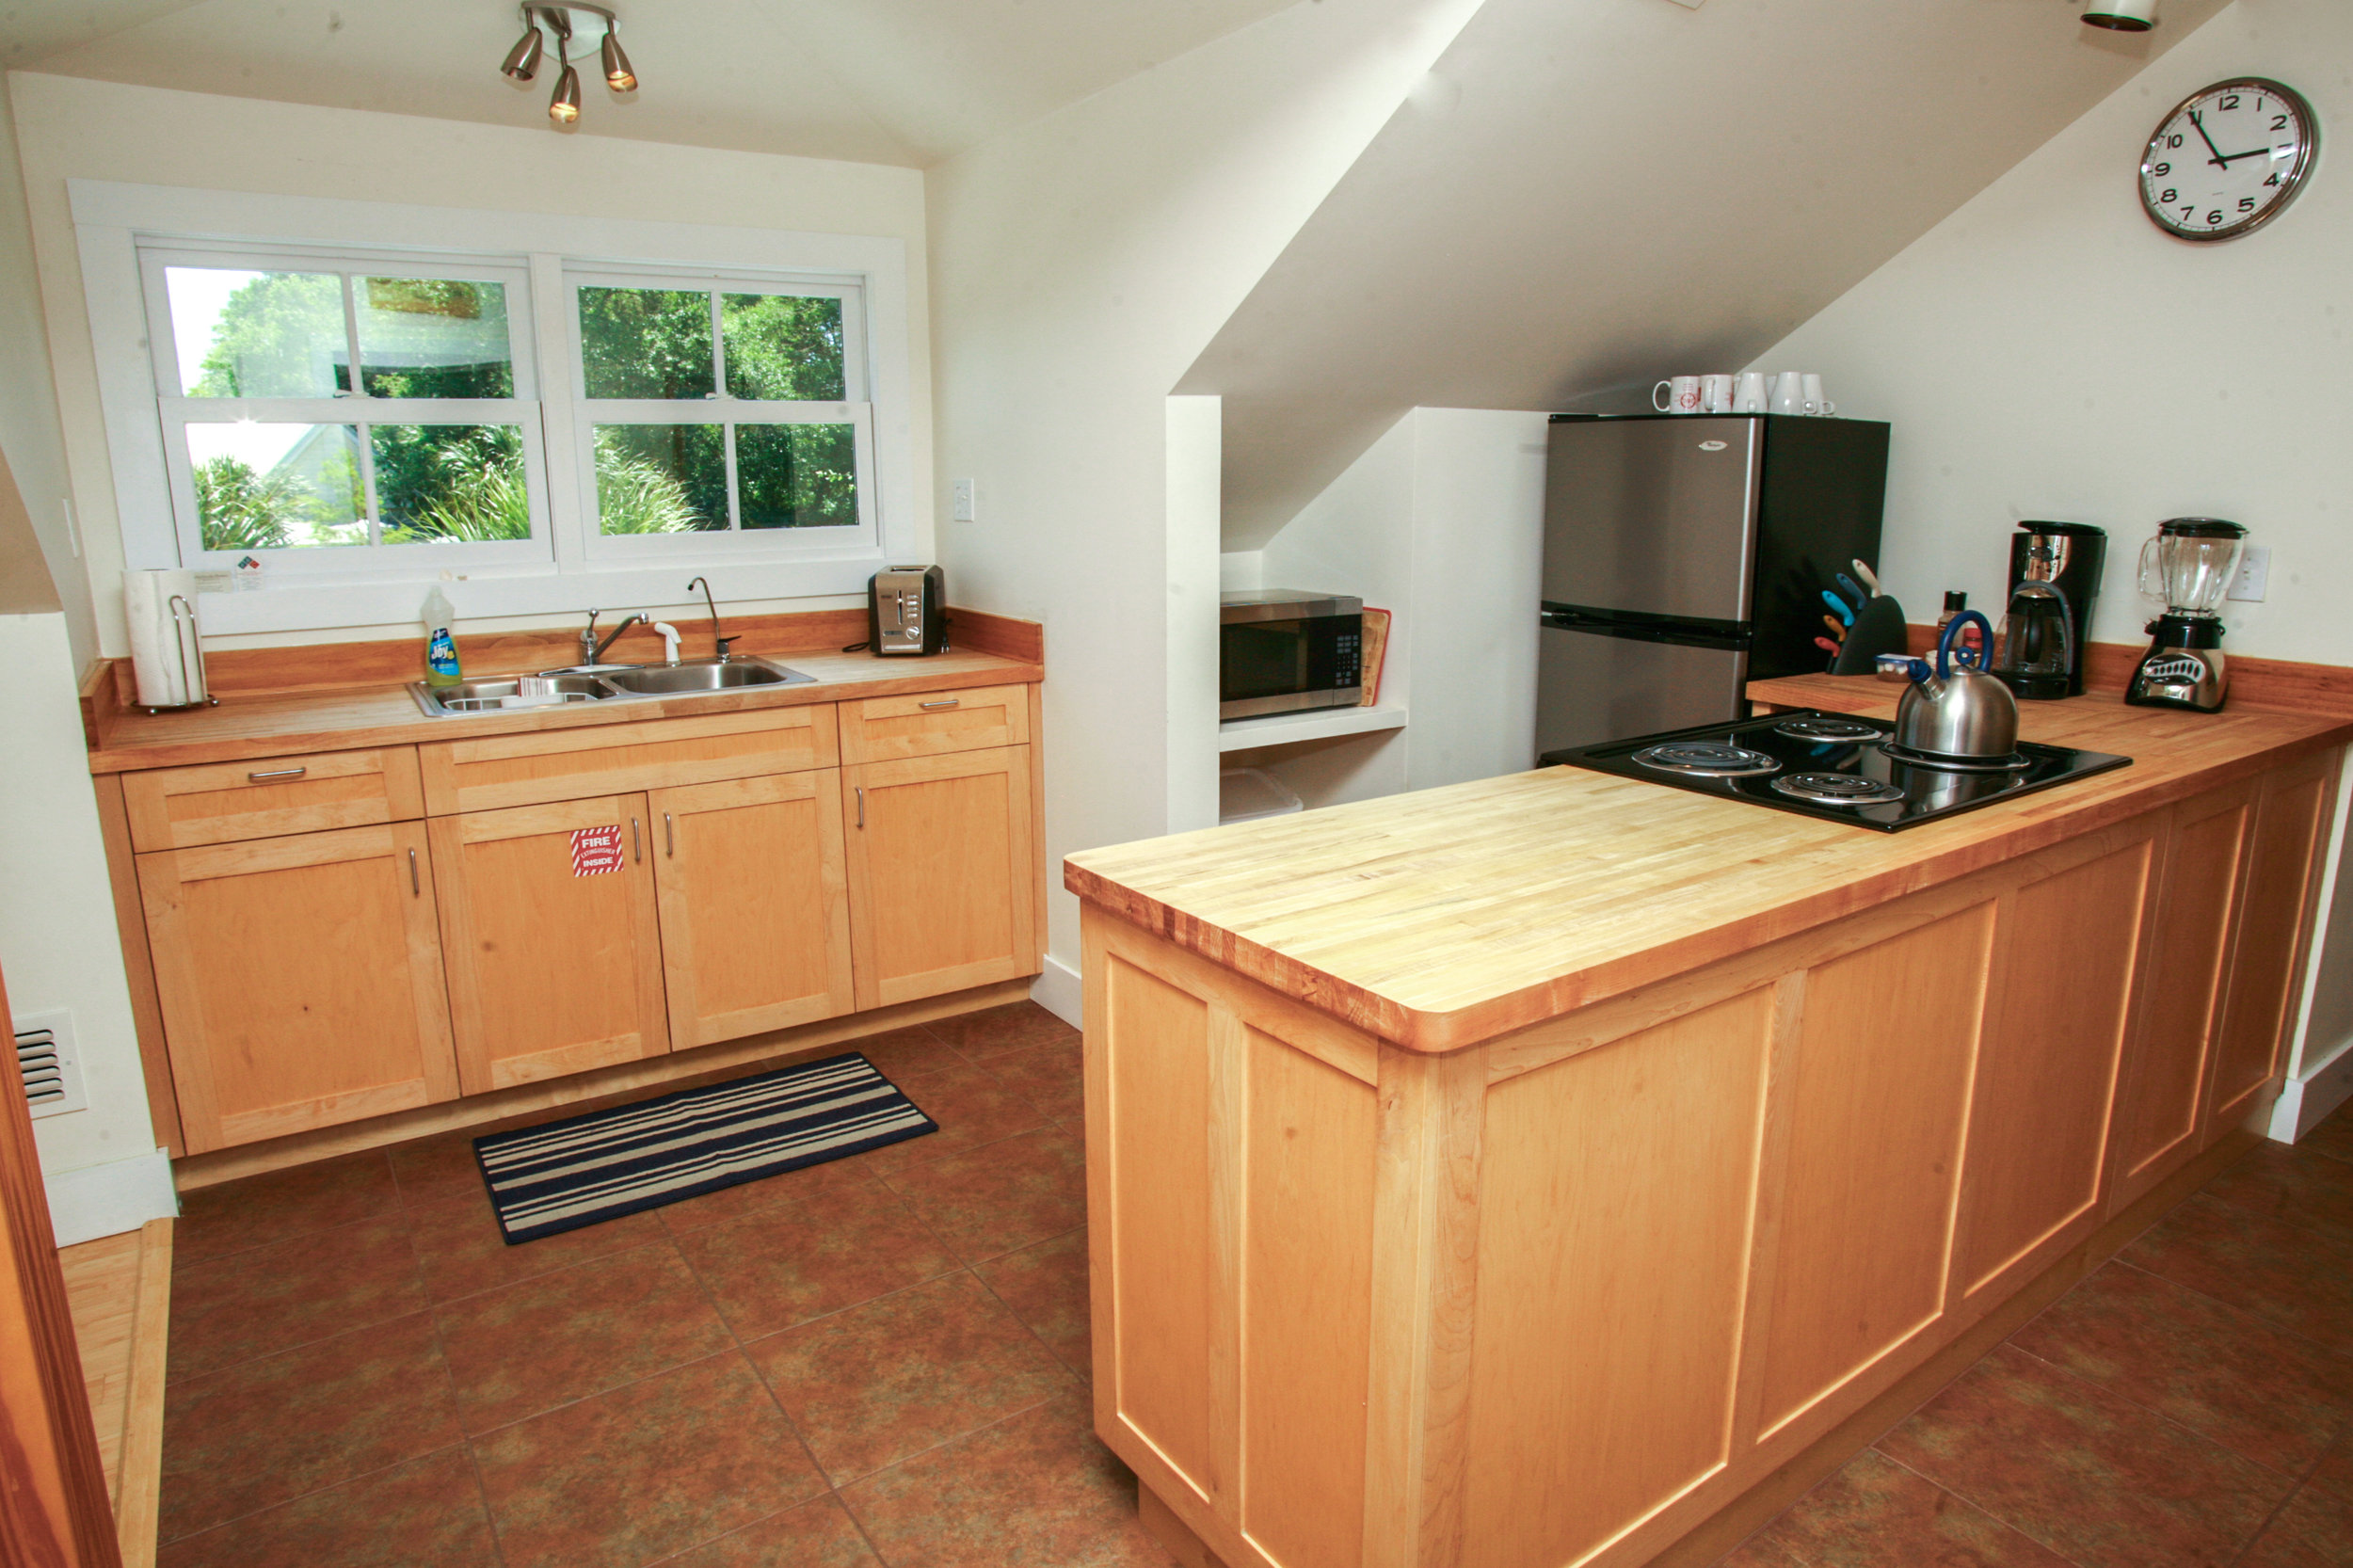 Fully equipped kitchen with loads of sunlight! All custom cabinetry.